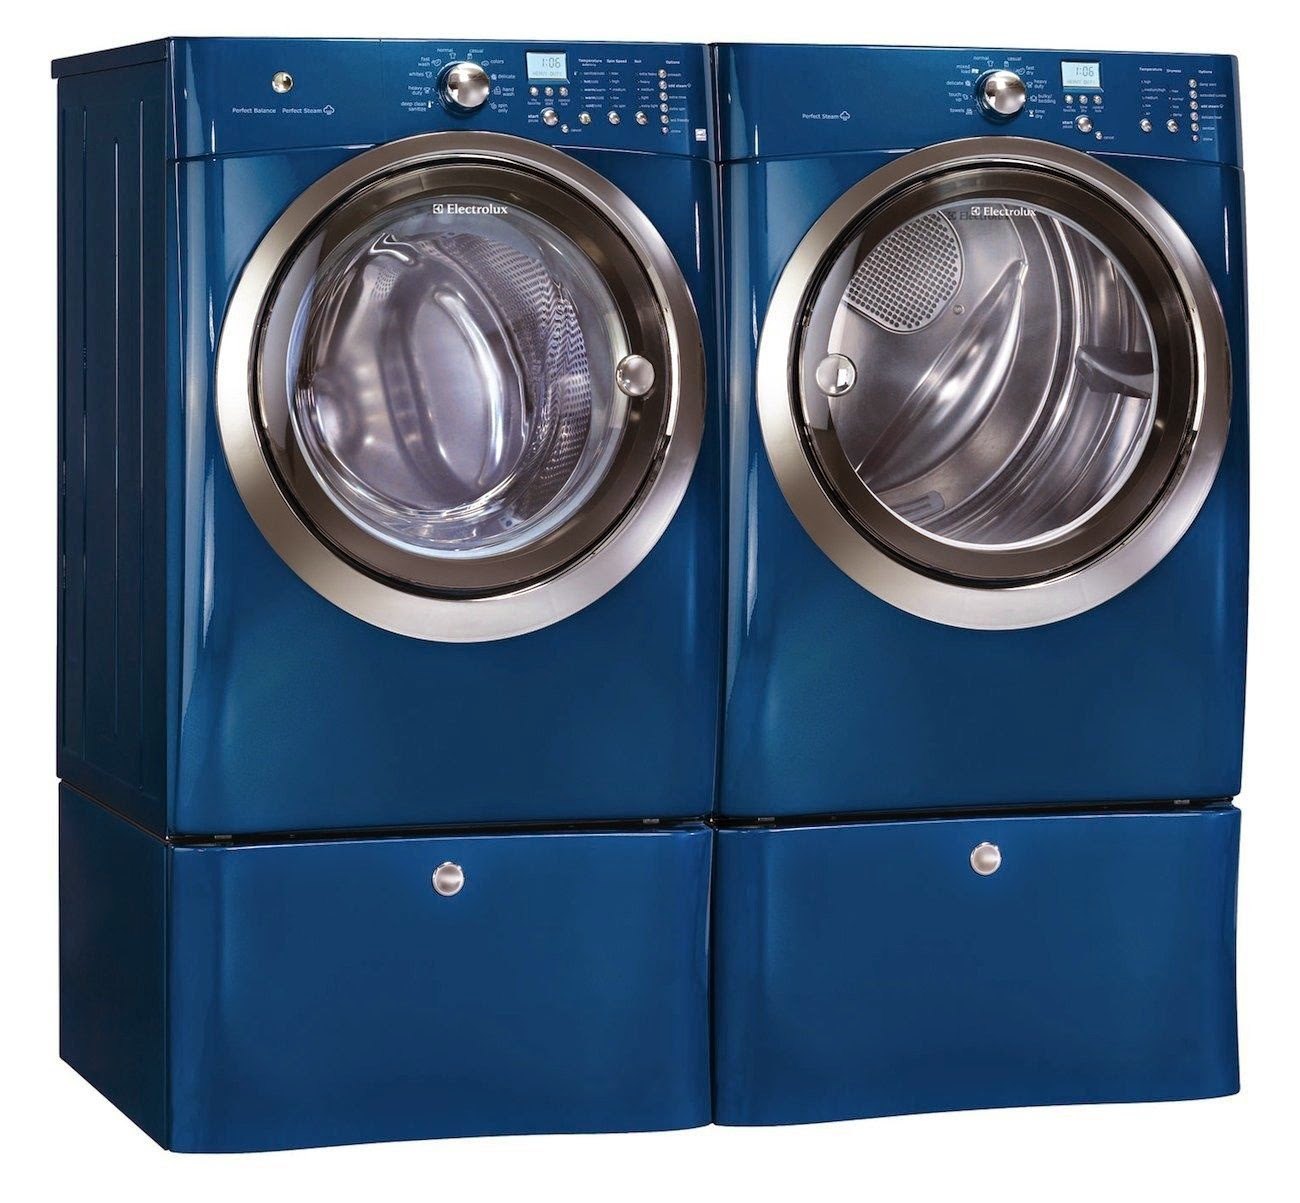 Washer Dryer Reviews Electrolux Washer And Dryer Reviews